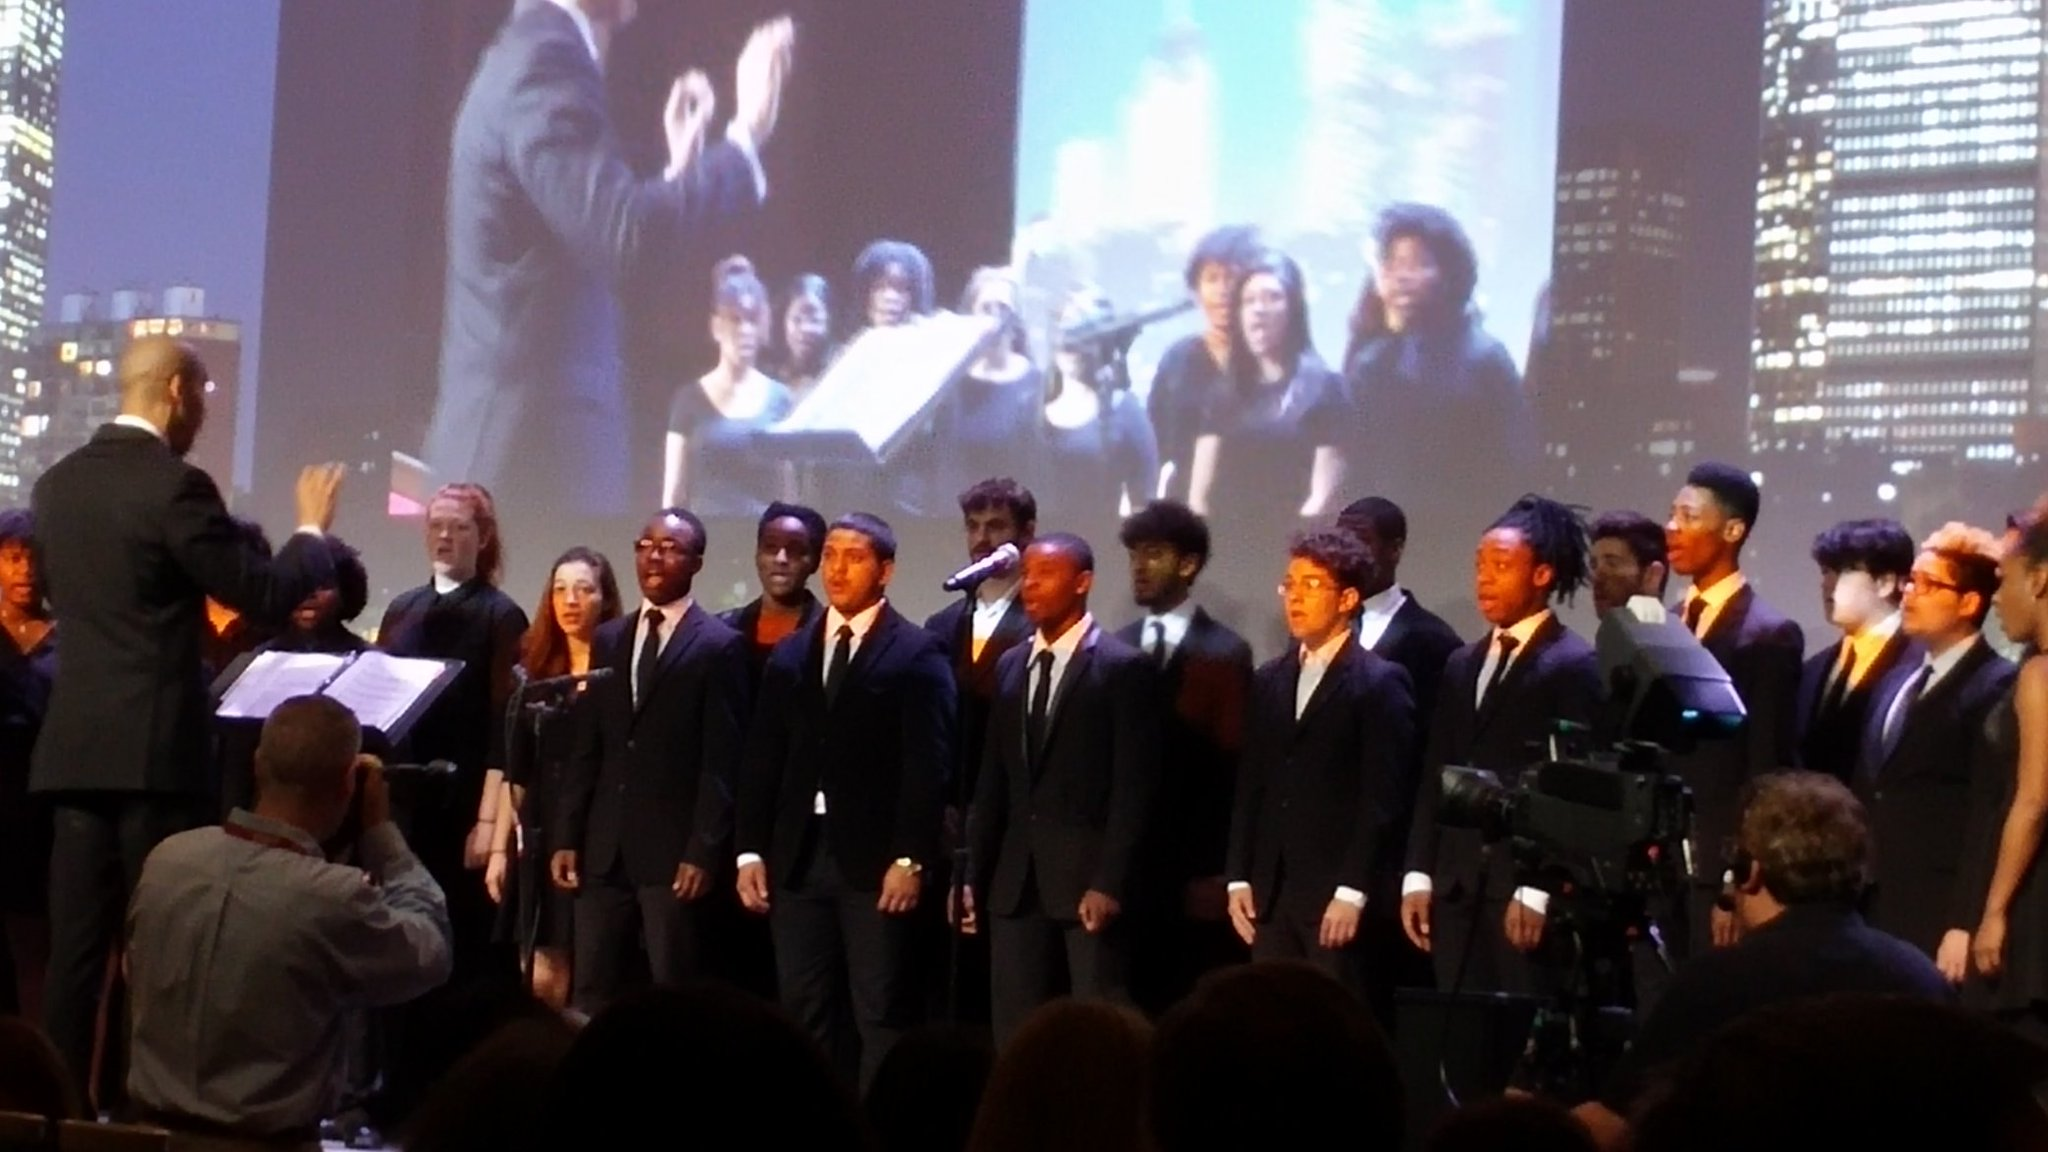 @Americans4Arts Standing O for the Boston Performing Arts High School chorus. Goosebumps! #AFTACON https://t.co/vwYhsgcWlu